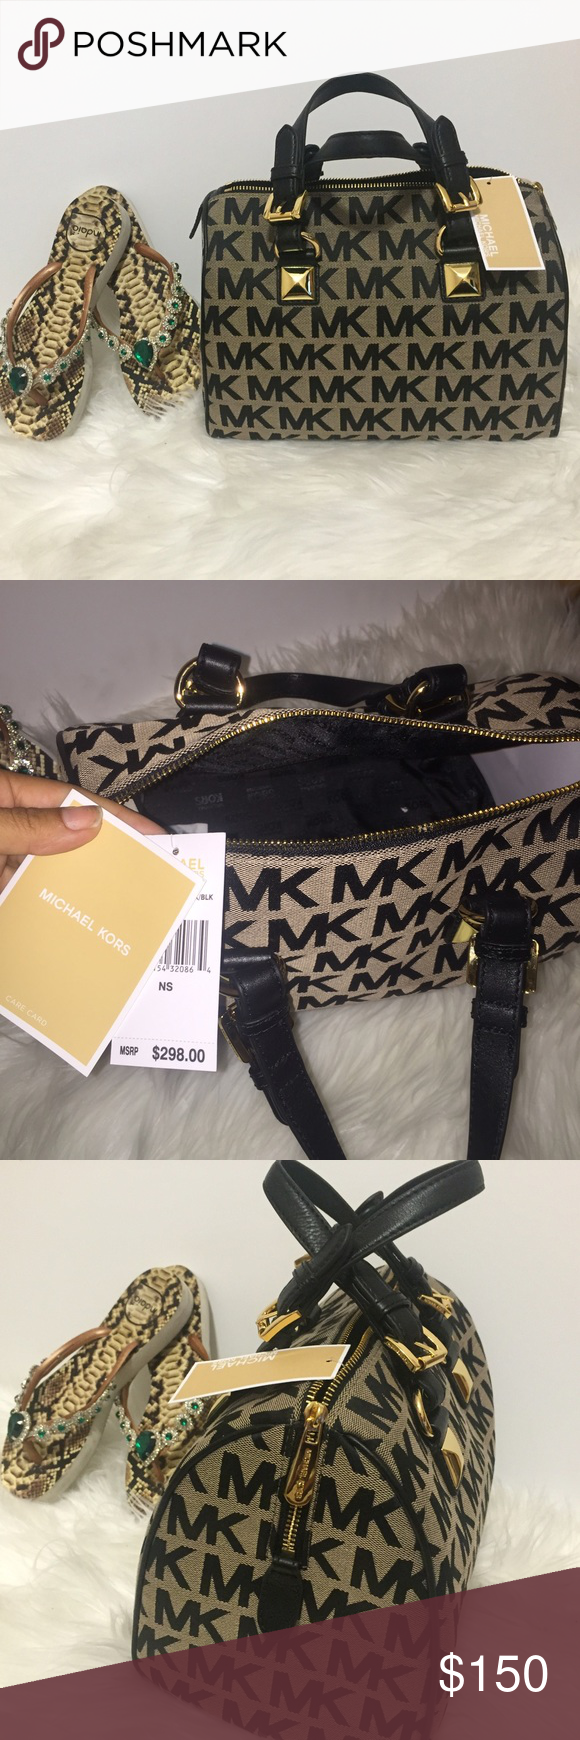 """MK Michael Kors Greyson black speedy stud bag 🚫NO TRADES - ignoring comments asking for that - Brand :Michael Kors Style :Satchel Material :Jacquard Color :Black Bag Height :8.5"""" Bag Depth :7"""" Bag Length :11.5"""" Strap Drop :6"""" Size :Medium UPC :888235790862 💯 authentic - unfortunately doesn't include dust bag - my sister kept it - original retail price is 298 - purchased two at a good sale -poshmark offers authenticity check if interested you can contact them :) Michael Kors Bags"""